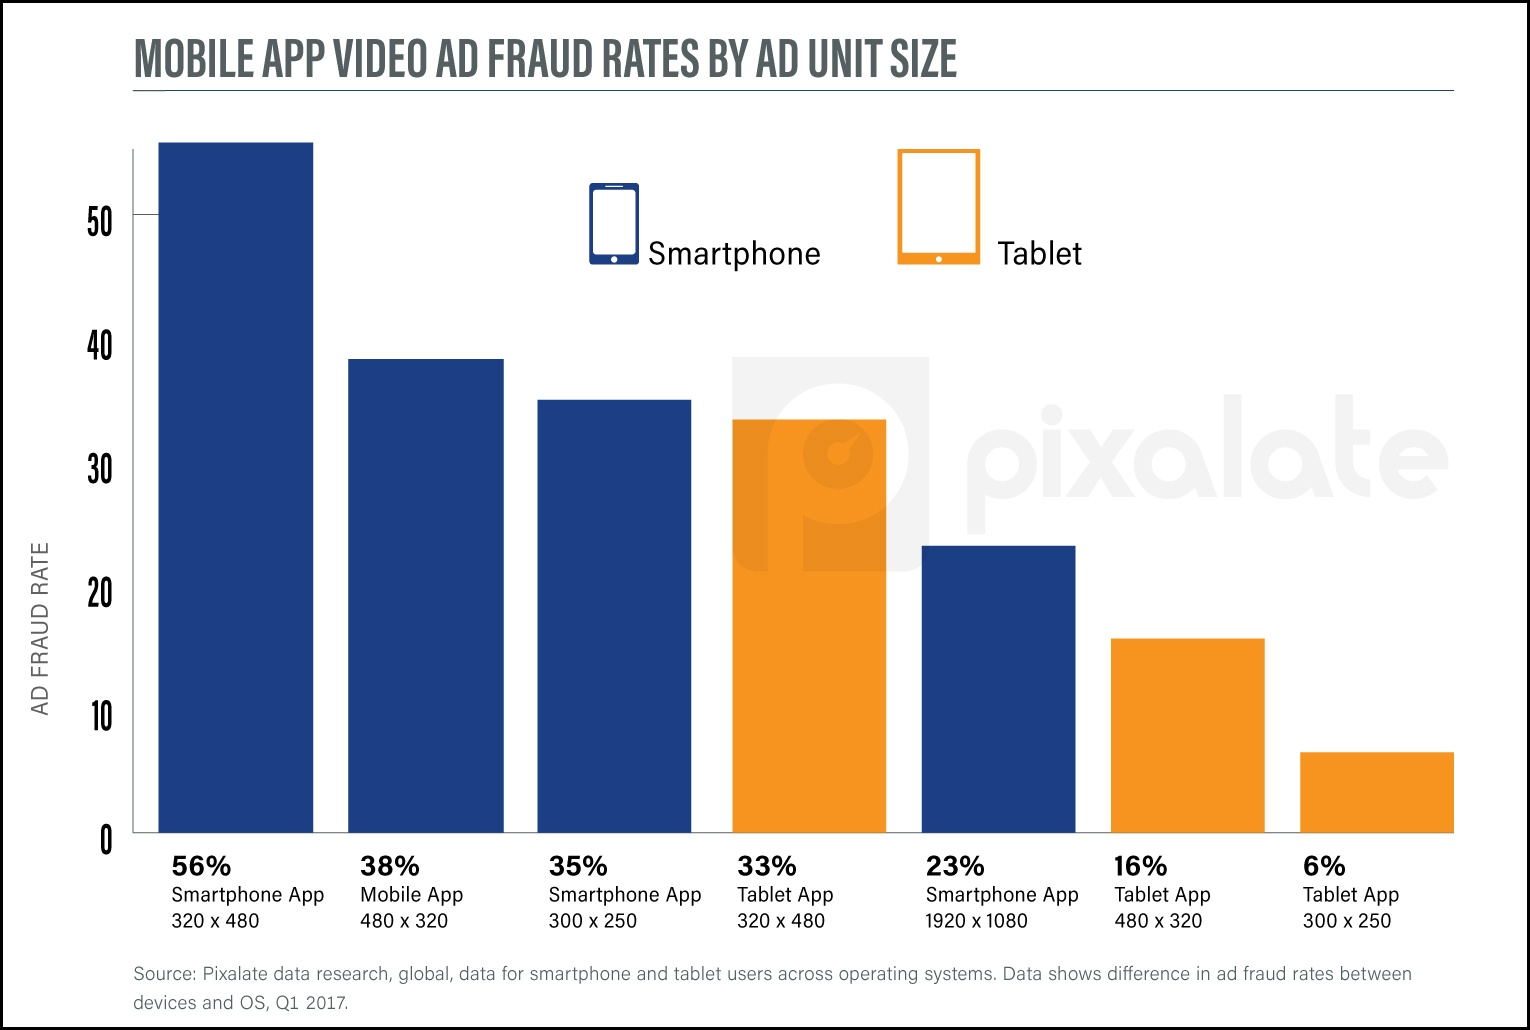 q1-2017-mobile-video-by-ad-unit-size.jpg